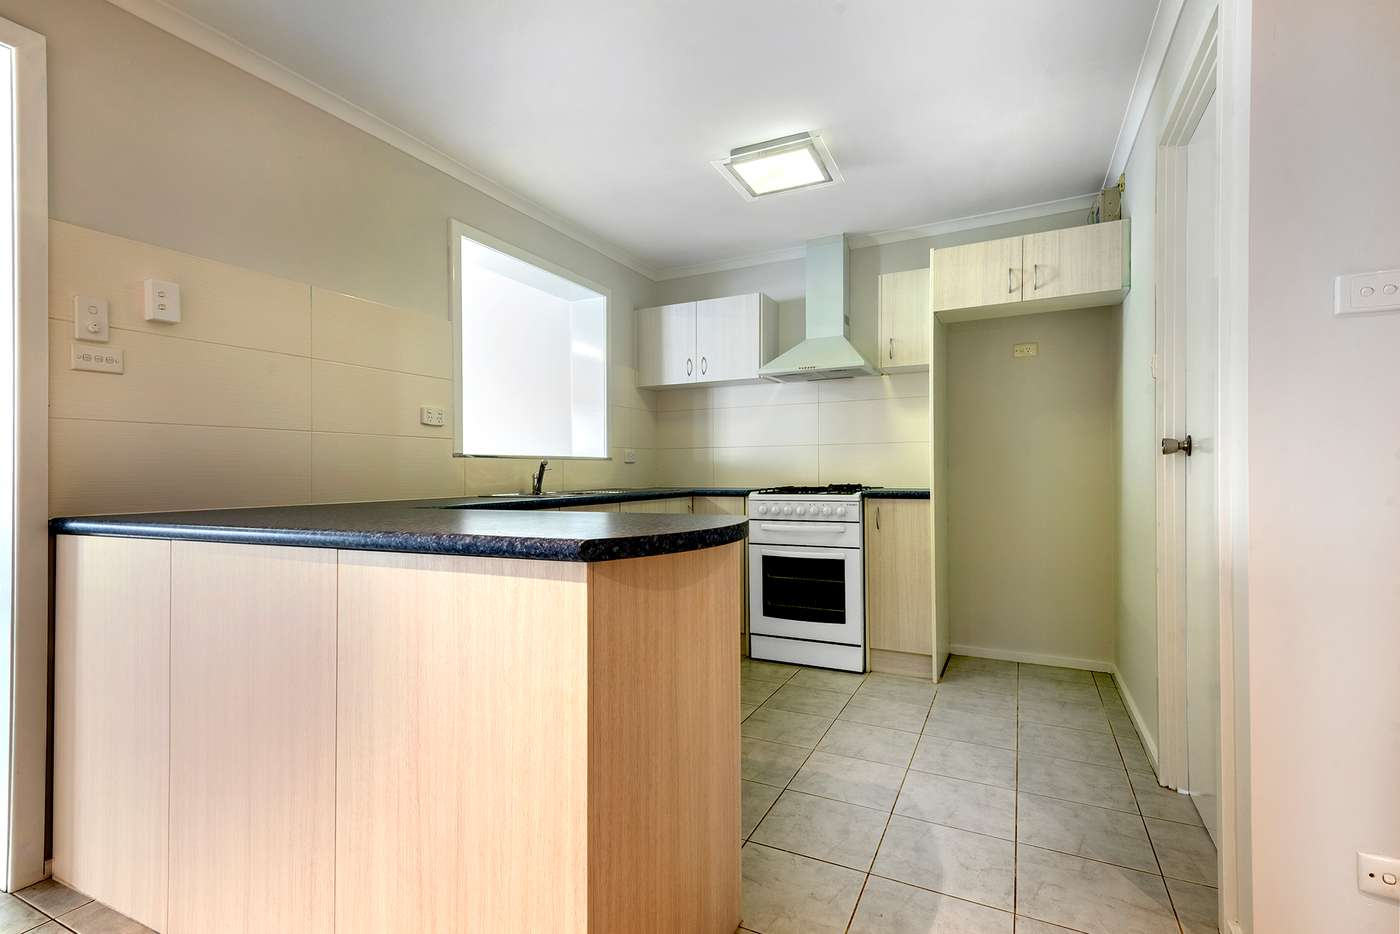 Sixth view of Homely house listing, 342 Ocean Drive, Usher WA 6230